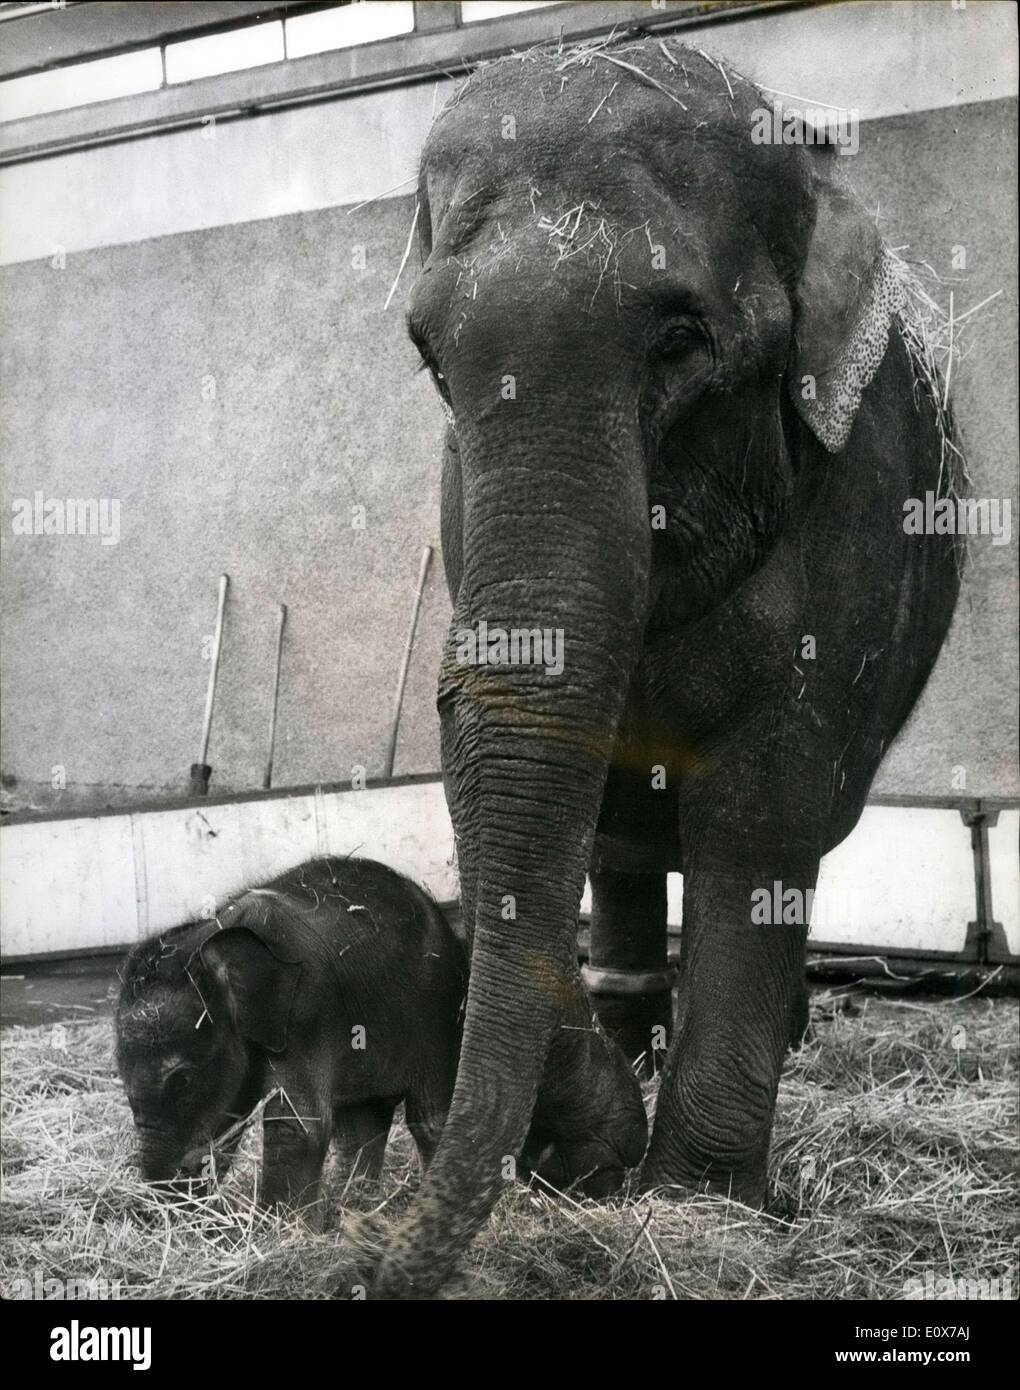 Aug. 16, 1965 - Baby elephant born in Switzerland: In our kind of latitude the birth of an elephant is a pretty - Stock Image